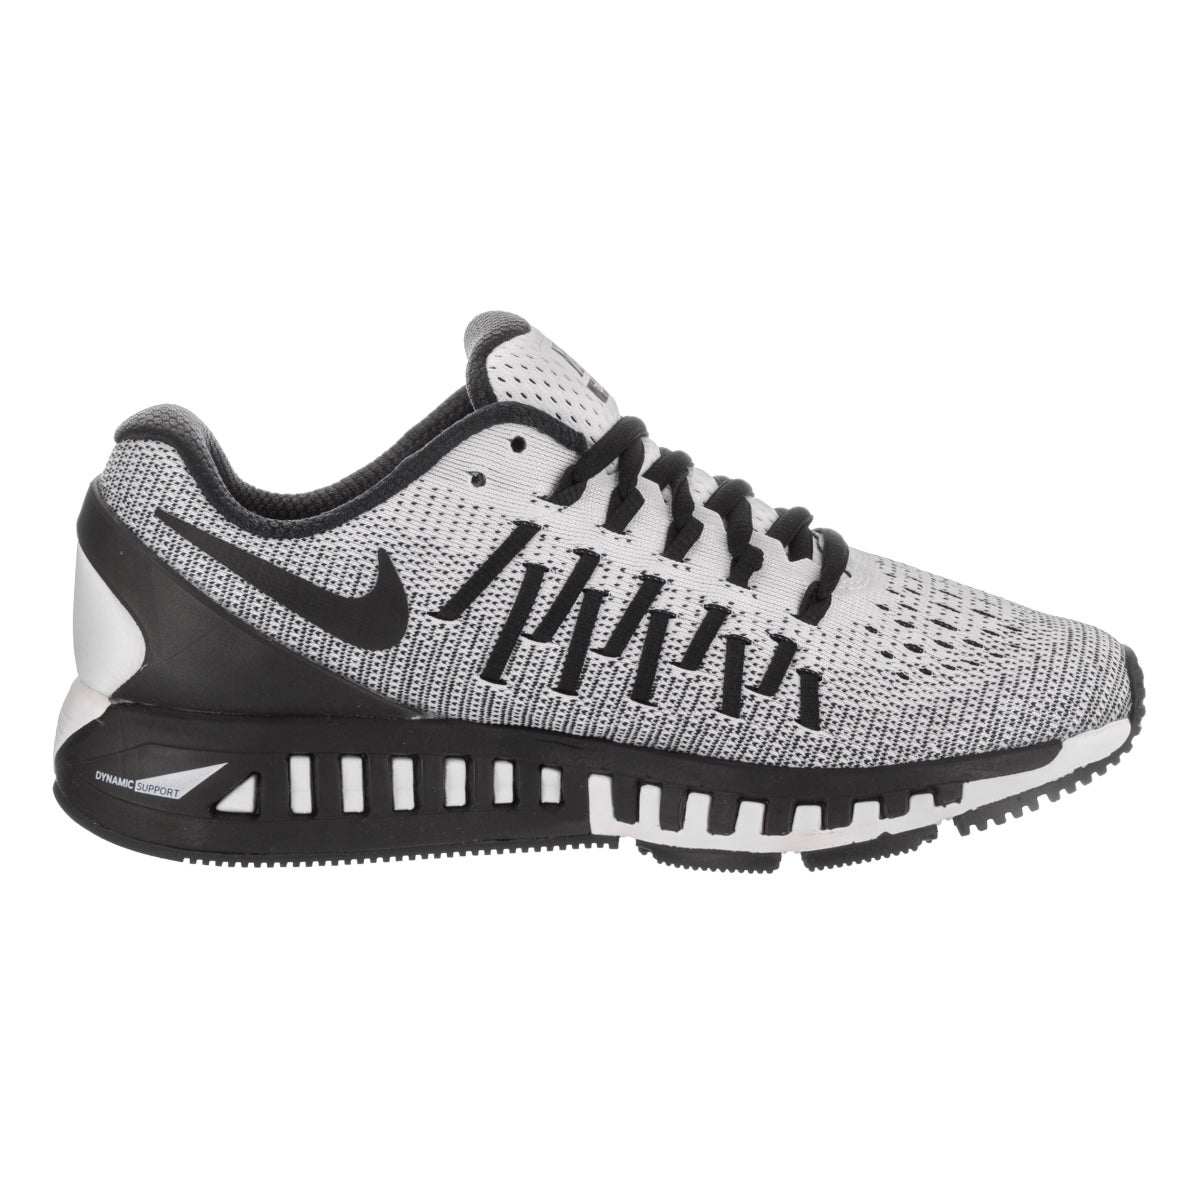 5559d9300ae Shop Nike Women s Air Zoom Odyssey 2 Running Shoes - Free Shipping Today -  Overstock - 14475872